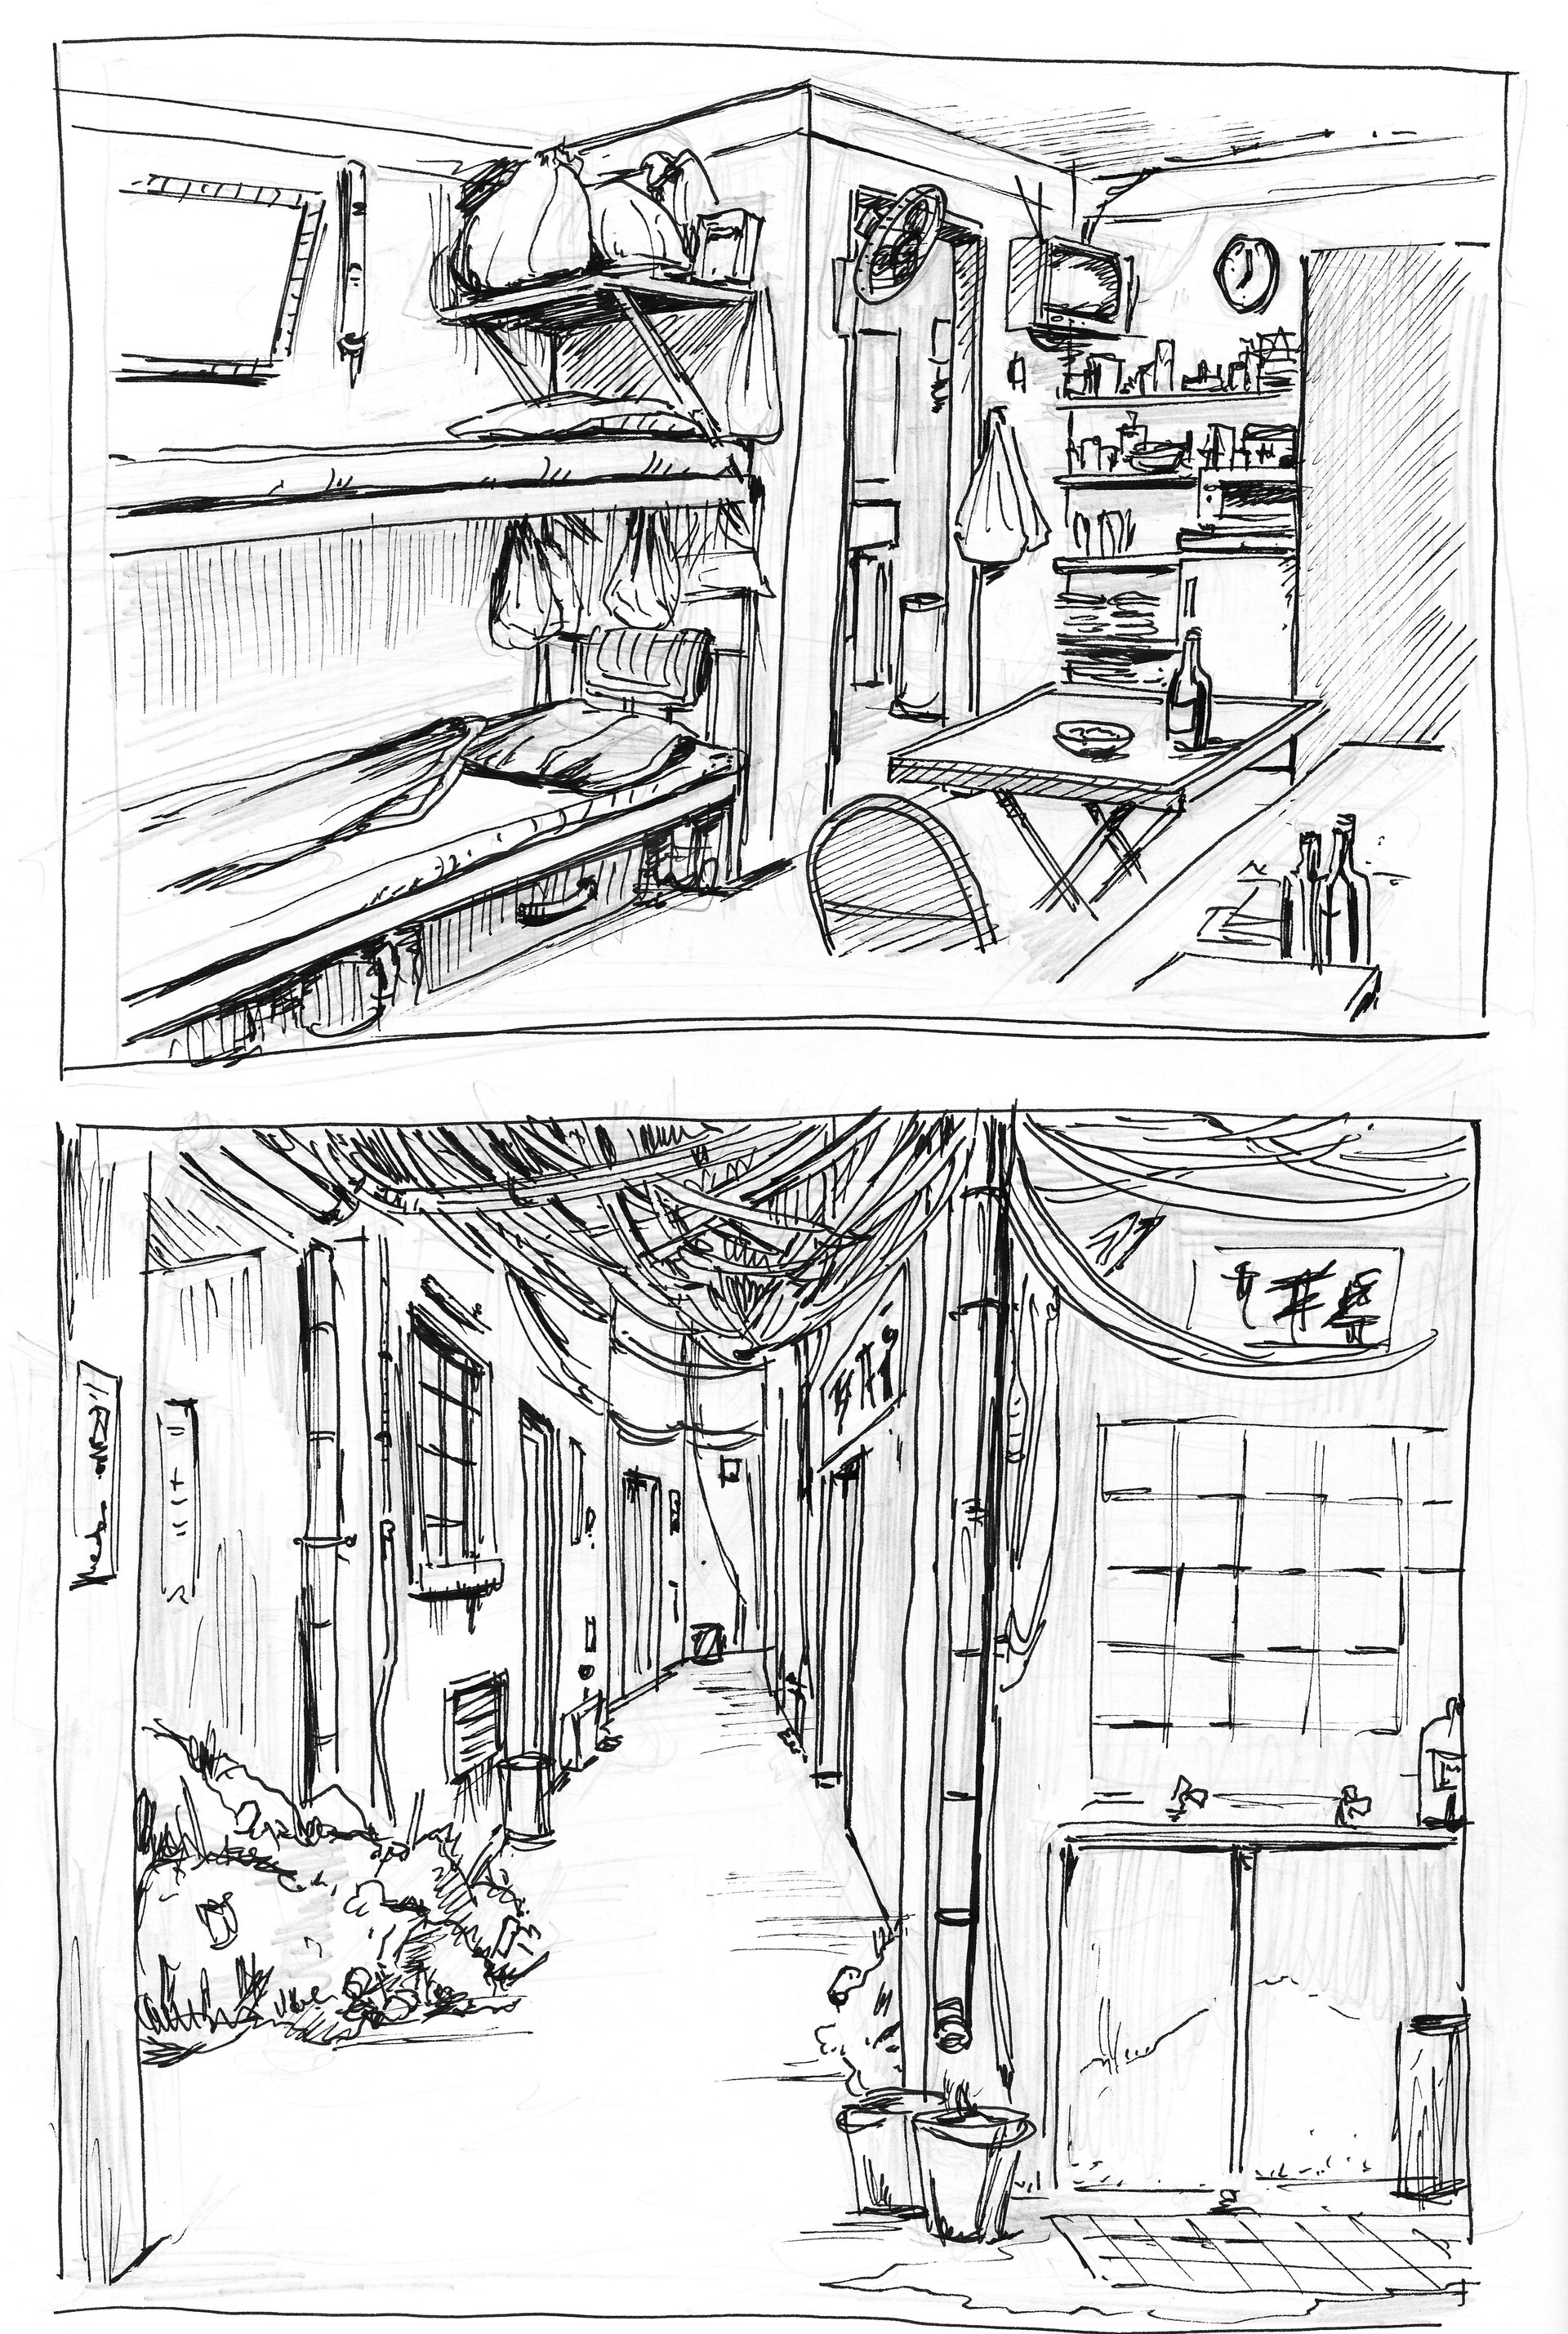 preliminary sketches for the environment